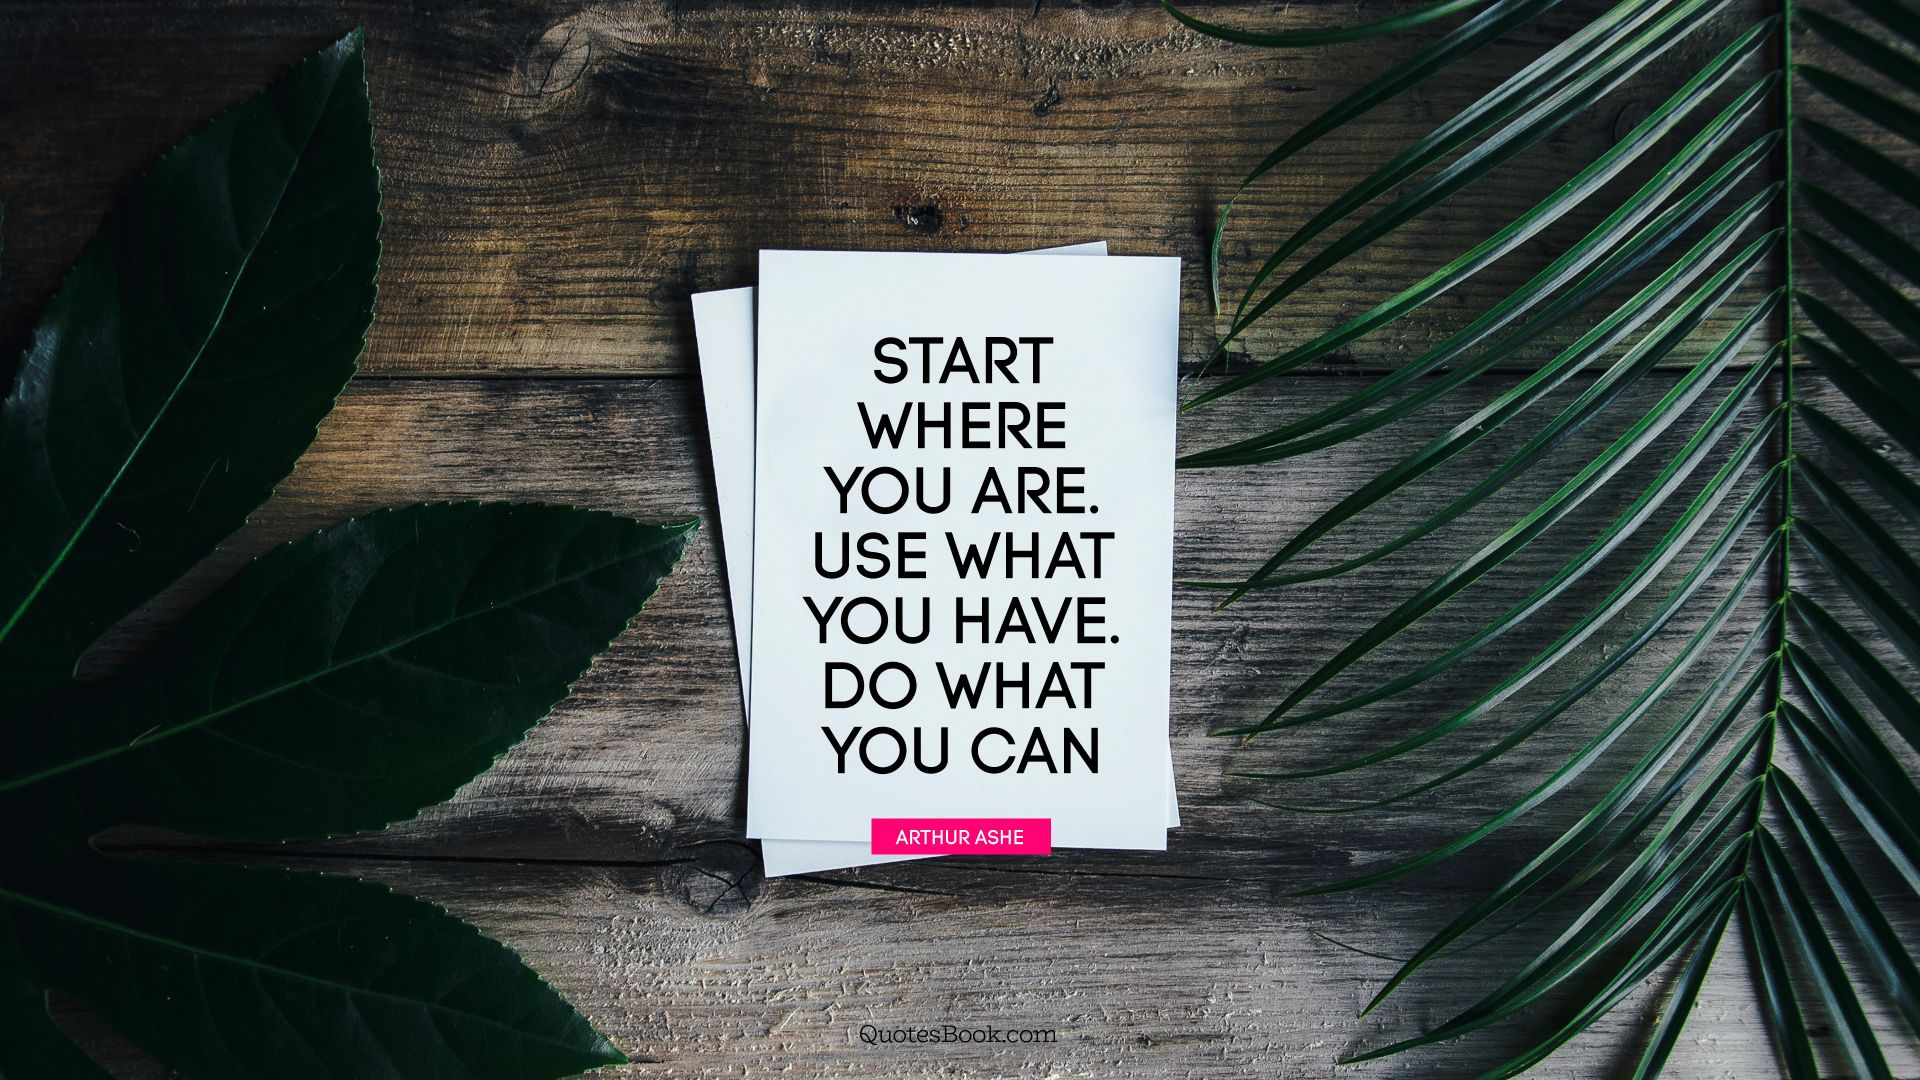 Start where you are. Use what you have. Do what you can. - Quote by Arthur Ashe